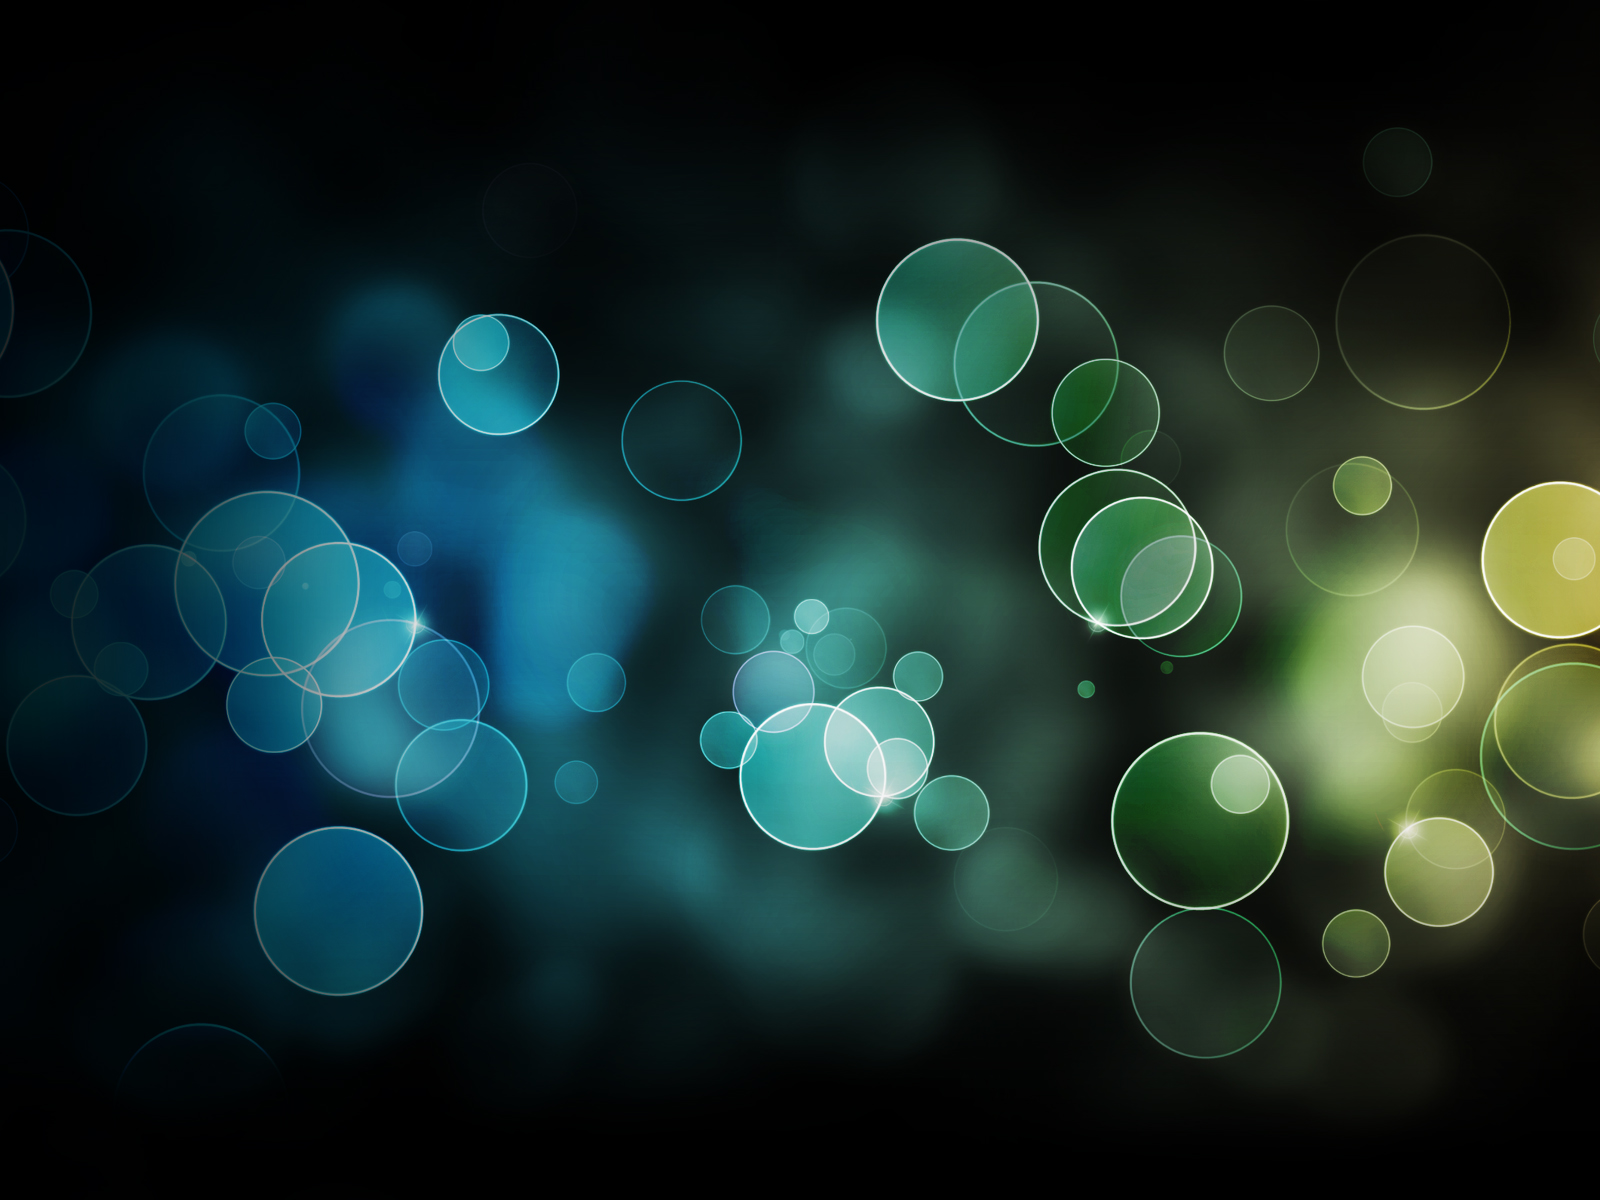 Blue Green Miracles Wallpapers HD Wallpapers 1600x1200